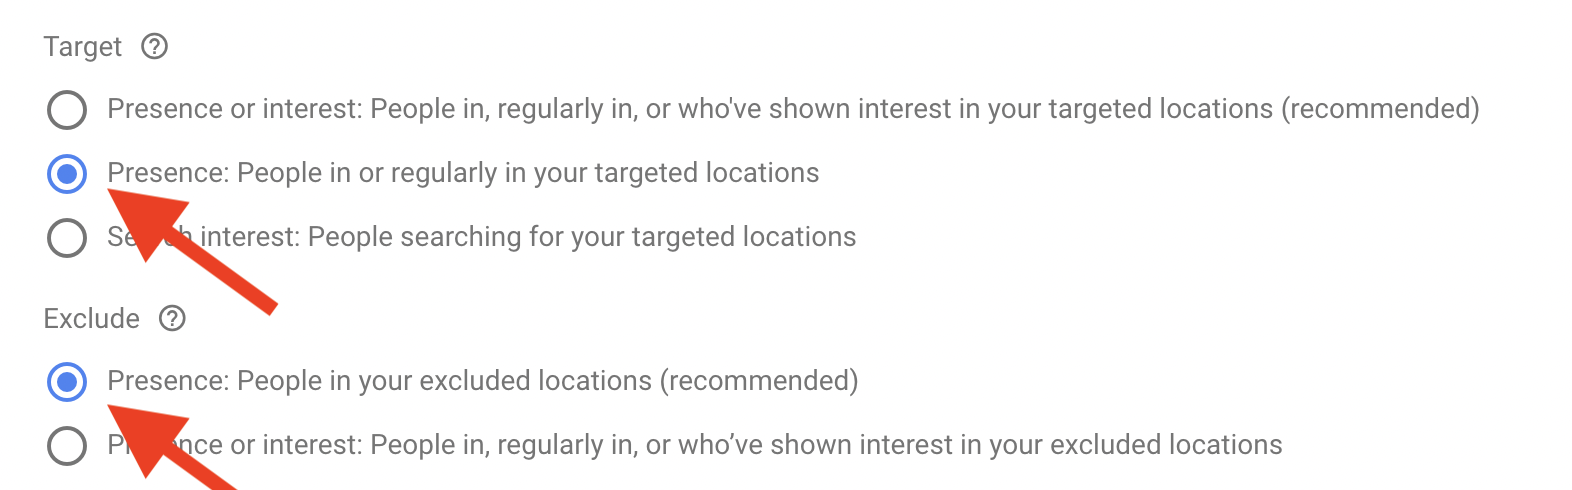 7 Target and exclude